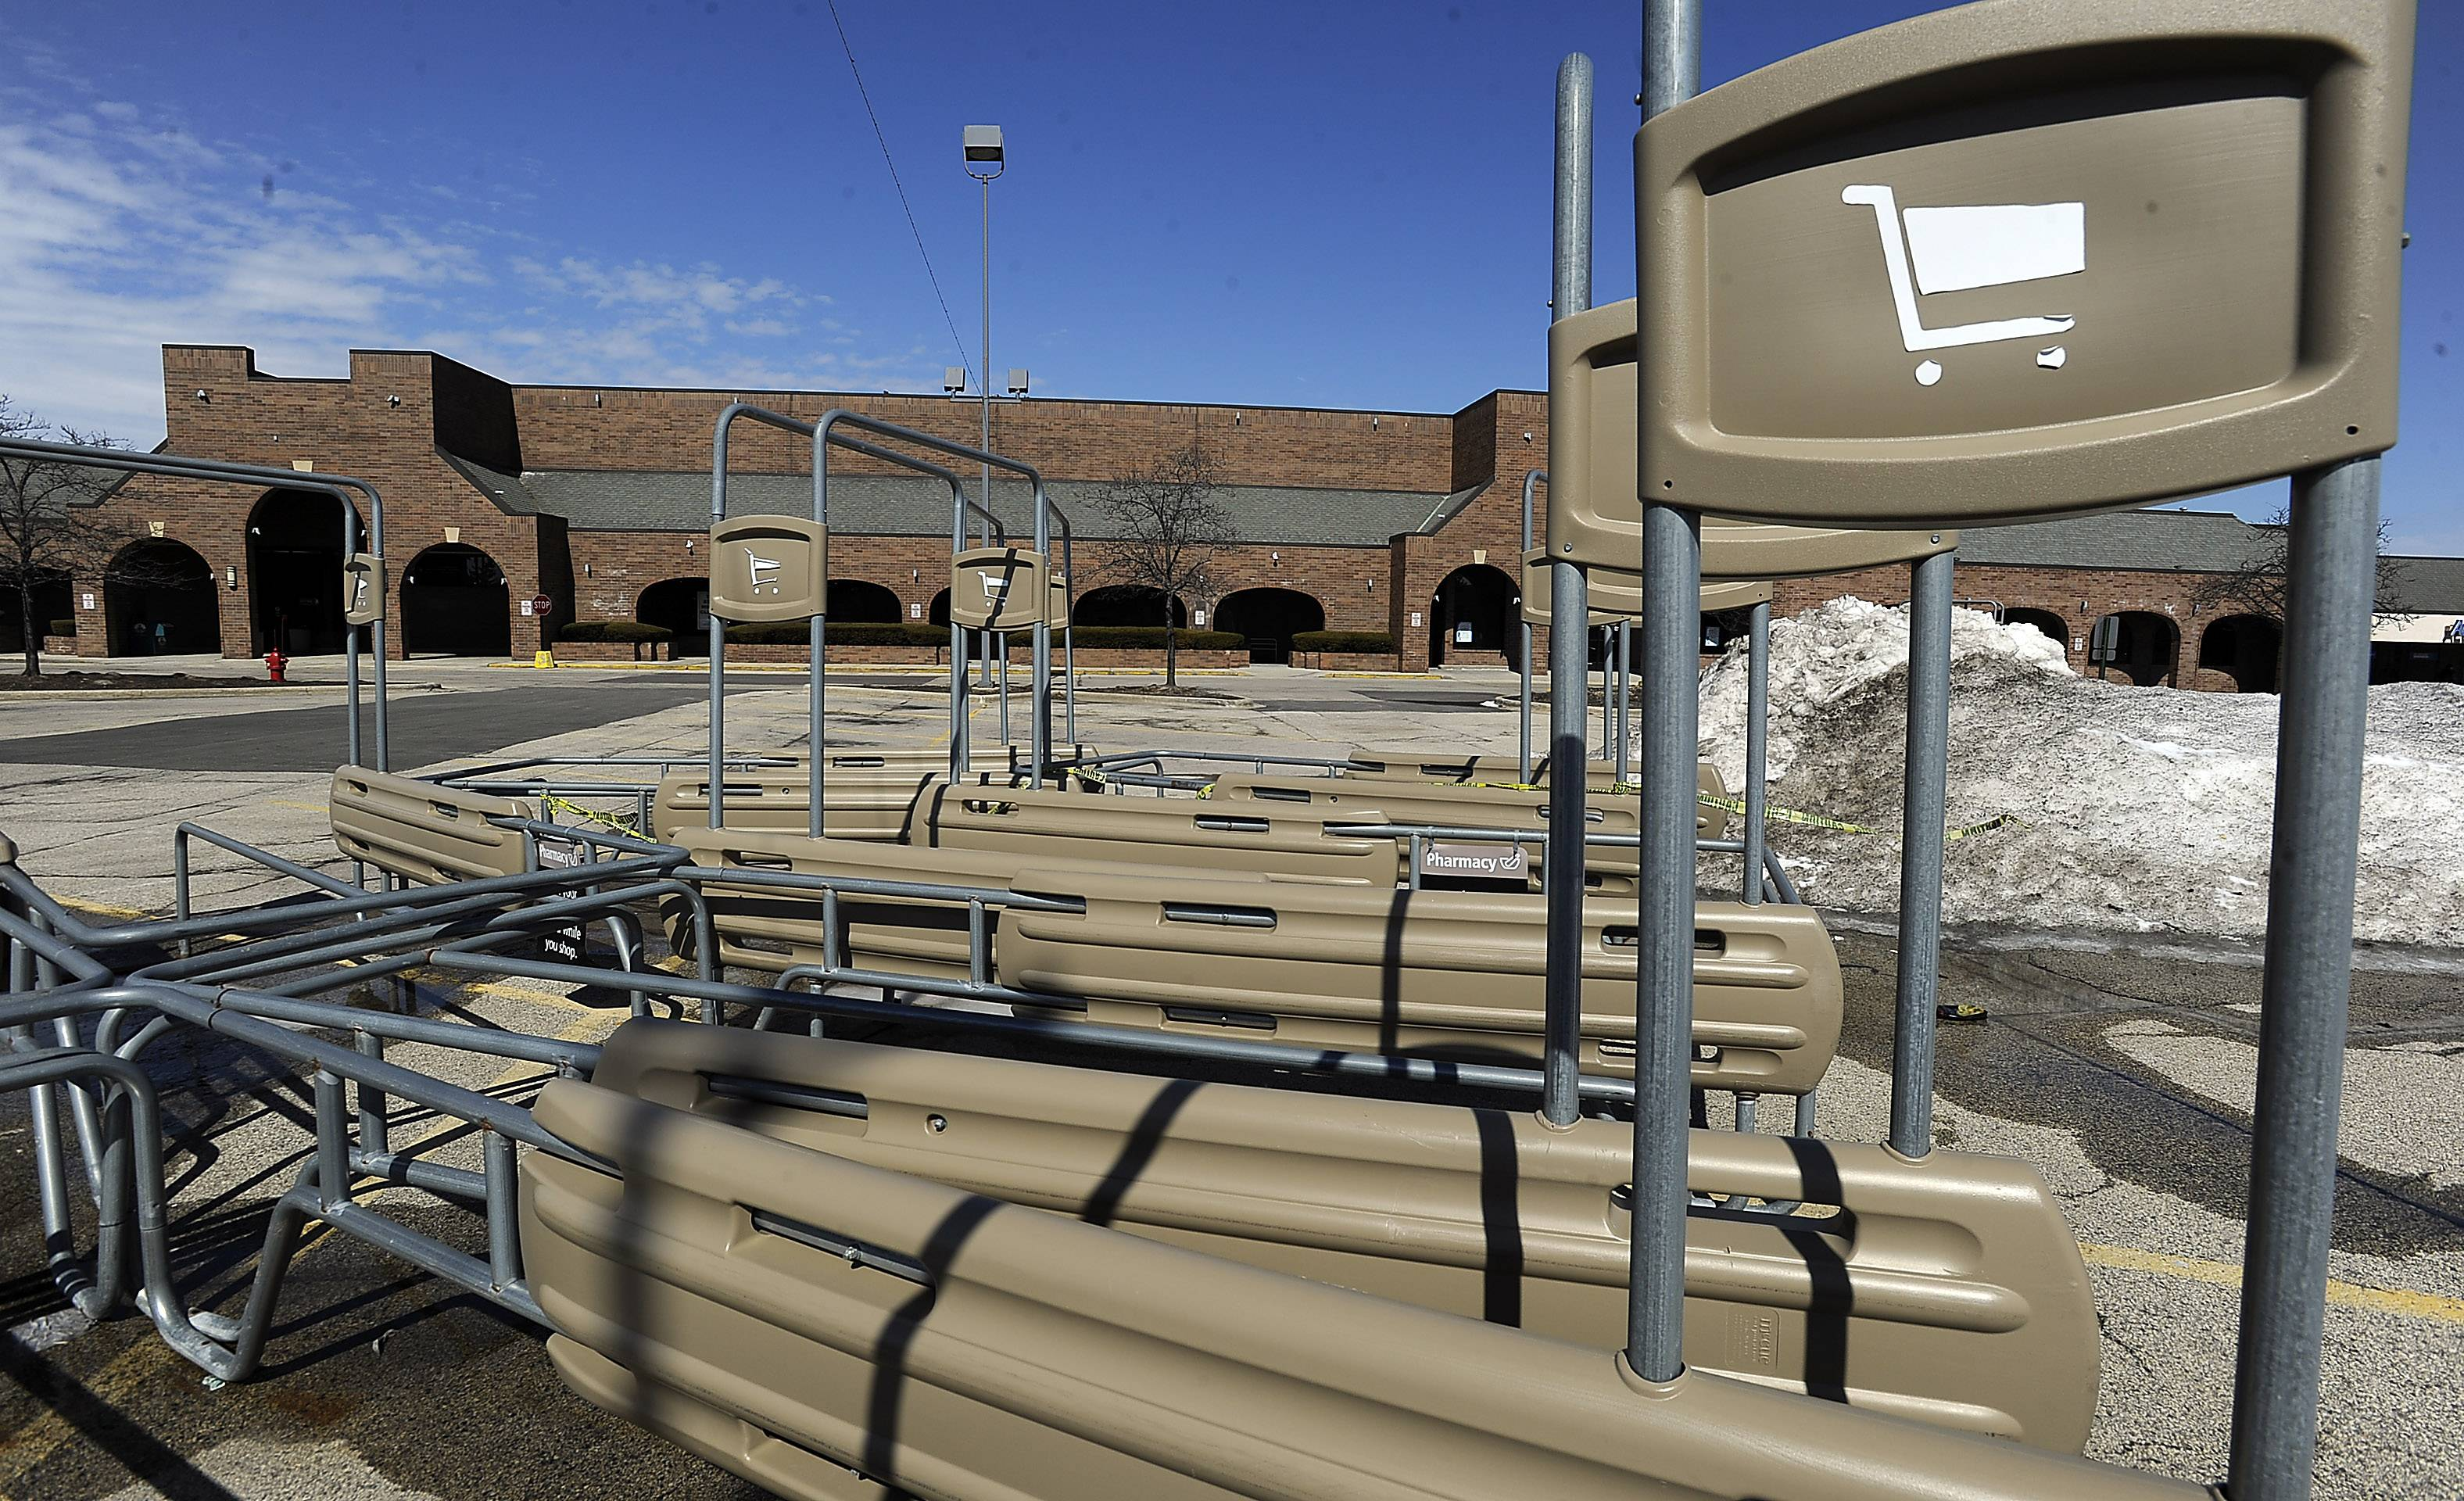 Empty shopping cart holders sit in the former Dominick's parking lot in Buffalo Grove's Chase Plaza on Lake-Cook Road. An unconfirmed report suggested that Elgin-based Butera Market will be converting it into a Piggly Wiggly.